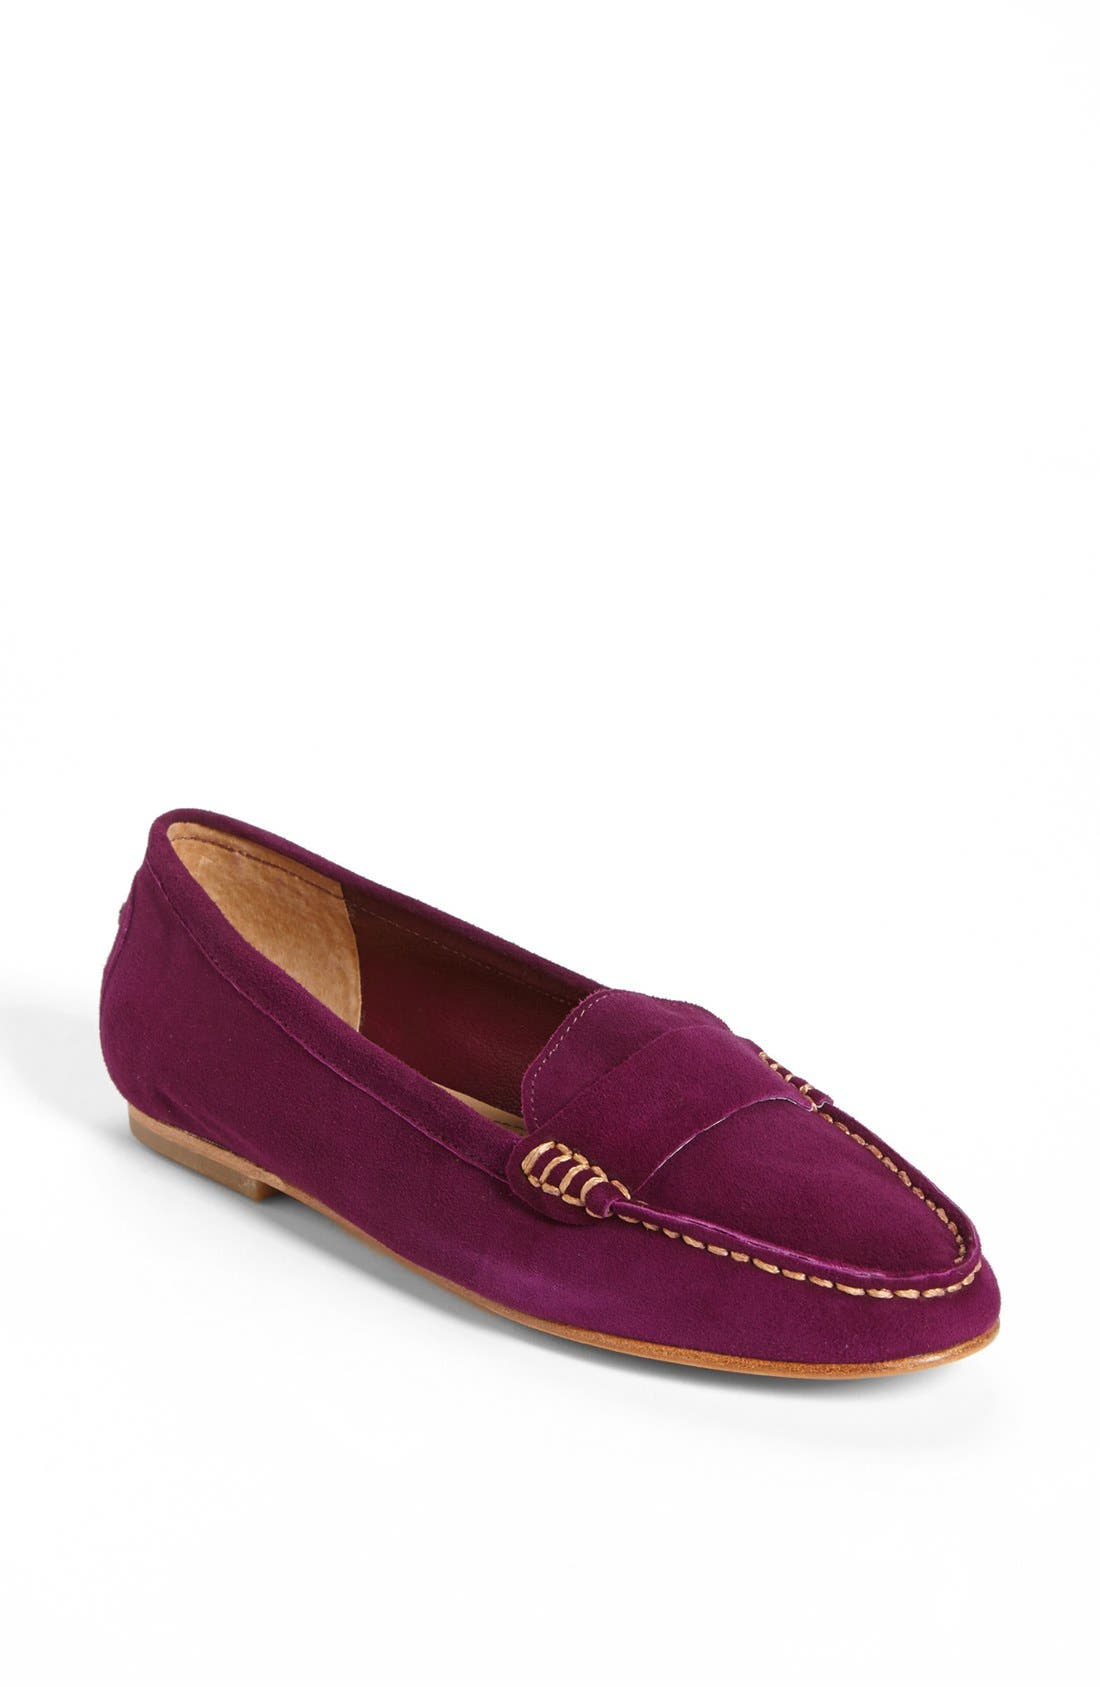 Alternate Image 1 Selected - Joie 'Dylan' Loafer